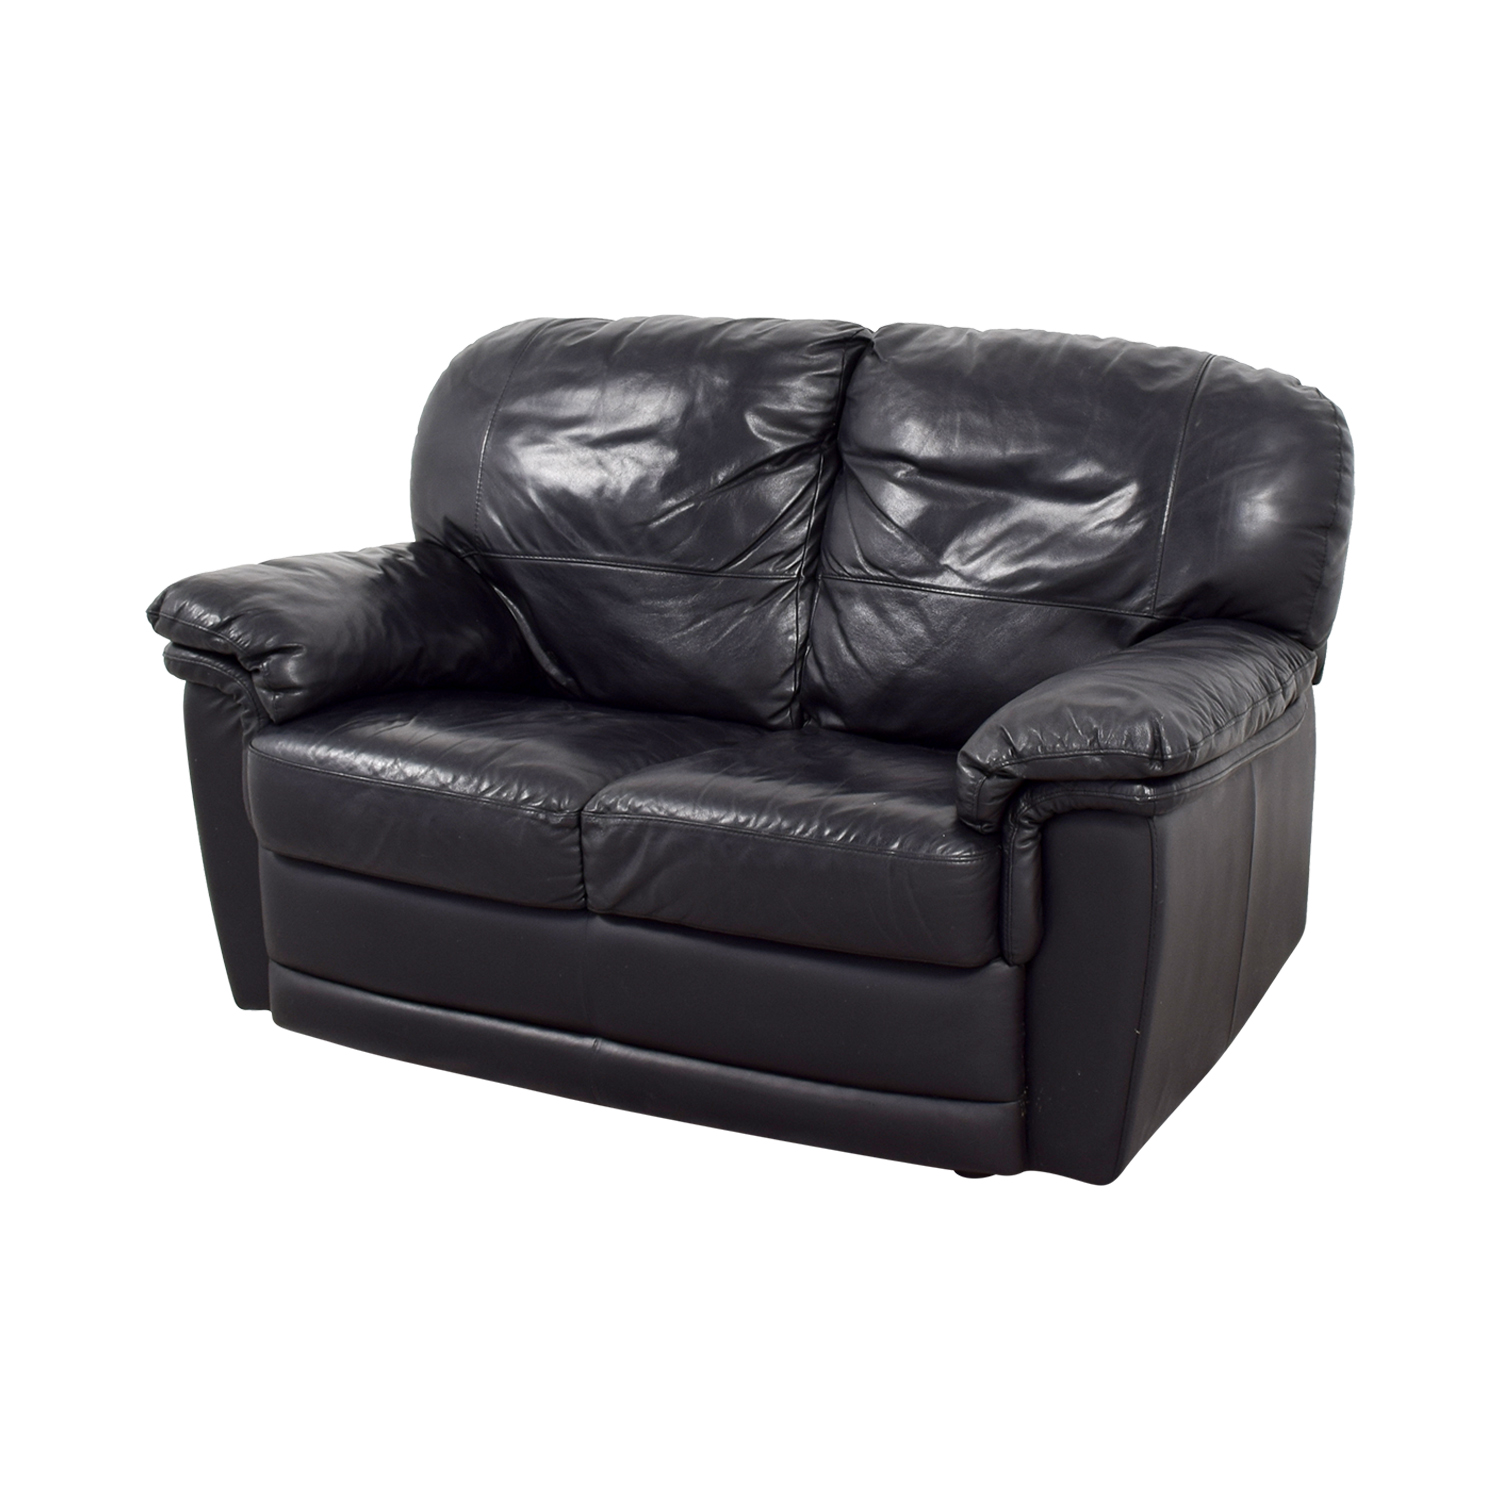 Cool 70 Off Nicoletti Home Nicoletti Black Leather Loveseat Sofas Dailytribune Chair Design For Home Dailytribuneorg